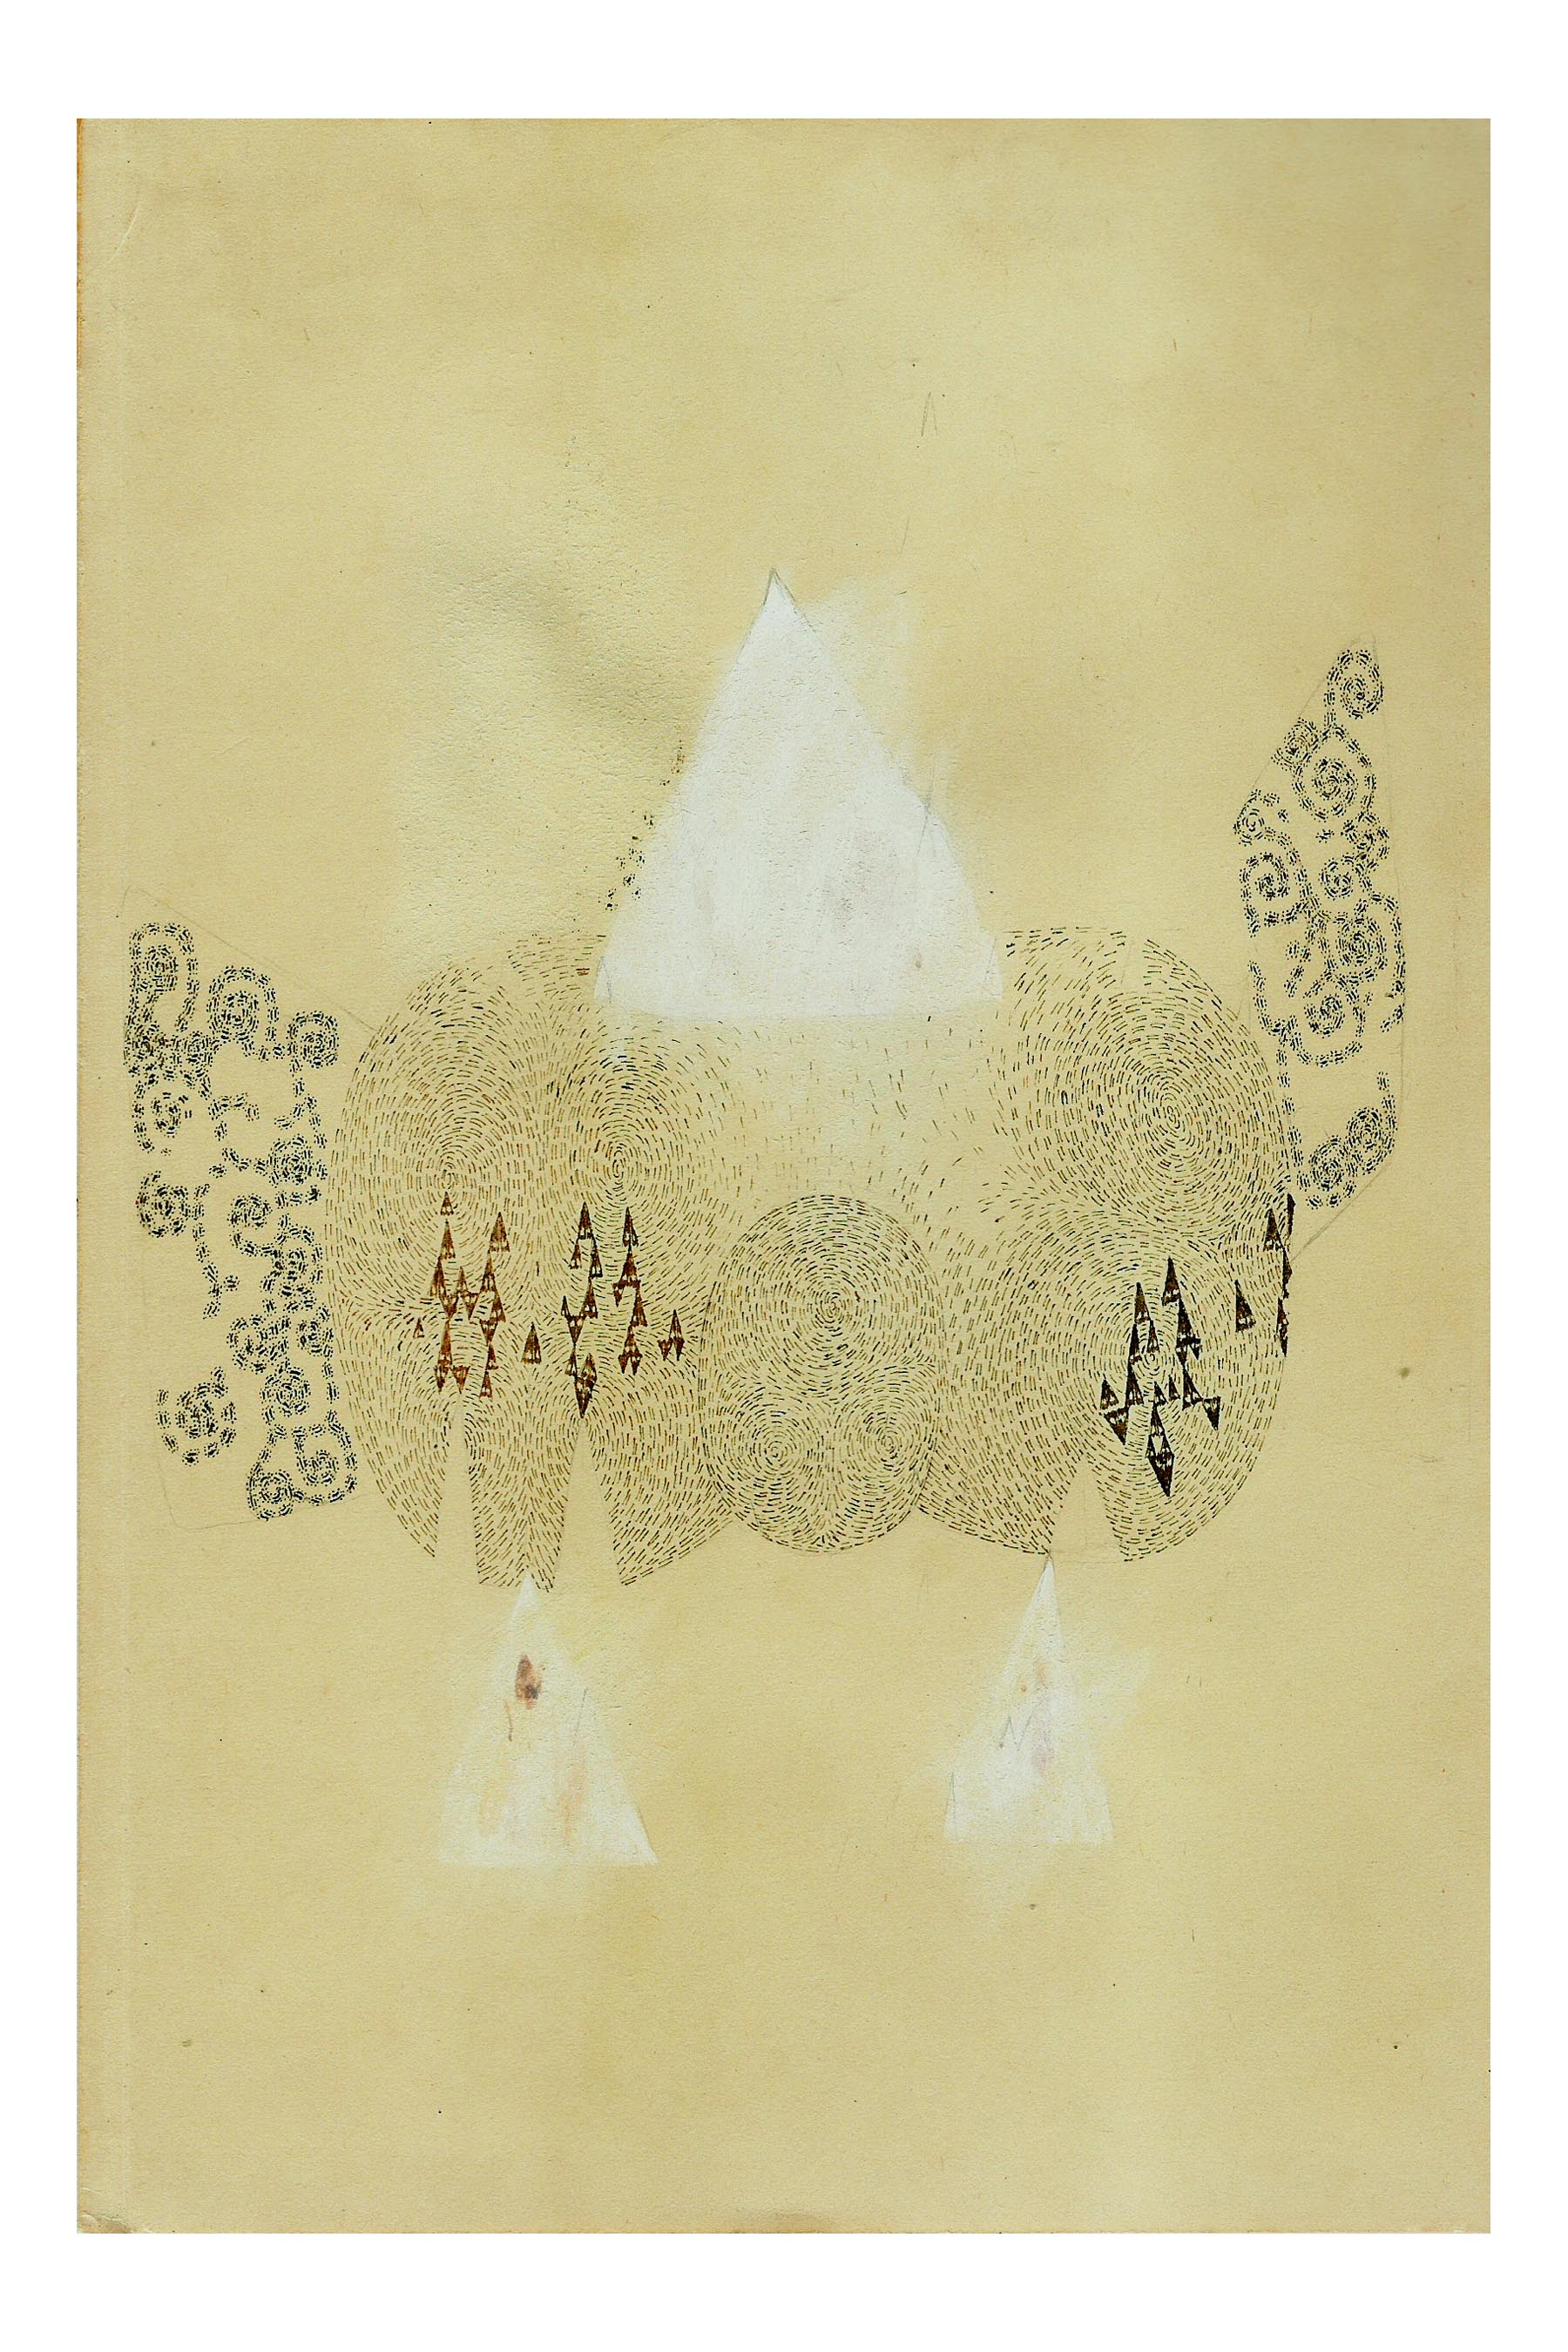 Tago  2004 Pencil, ink, and gouache on paper